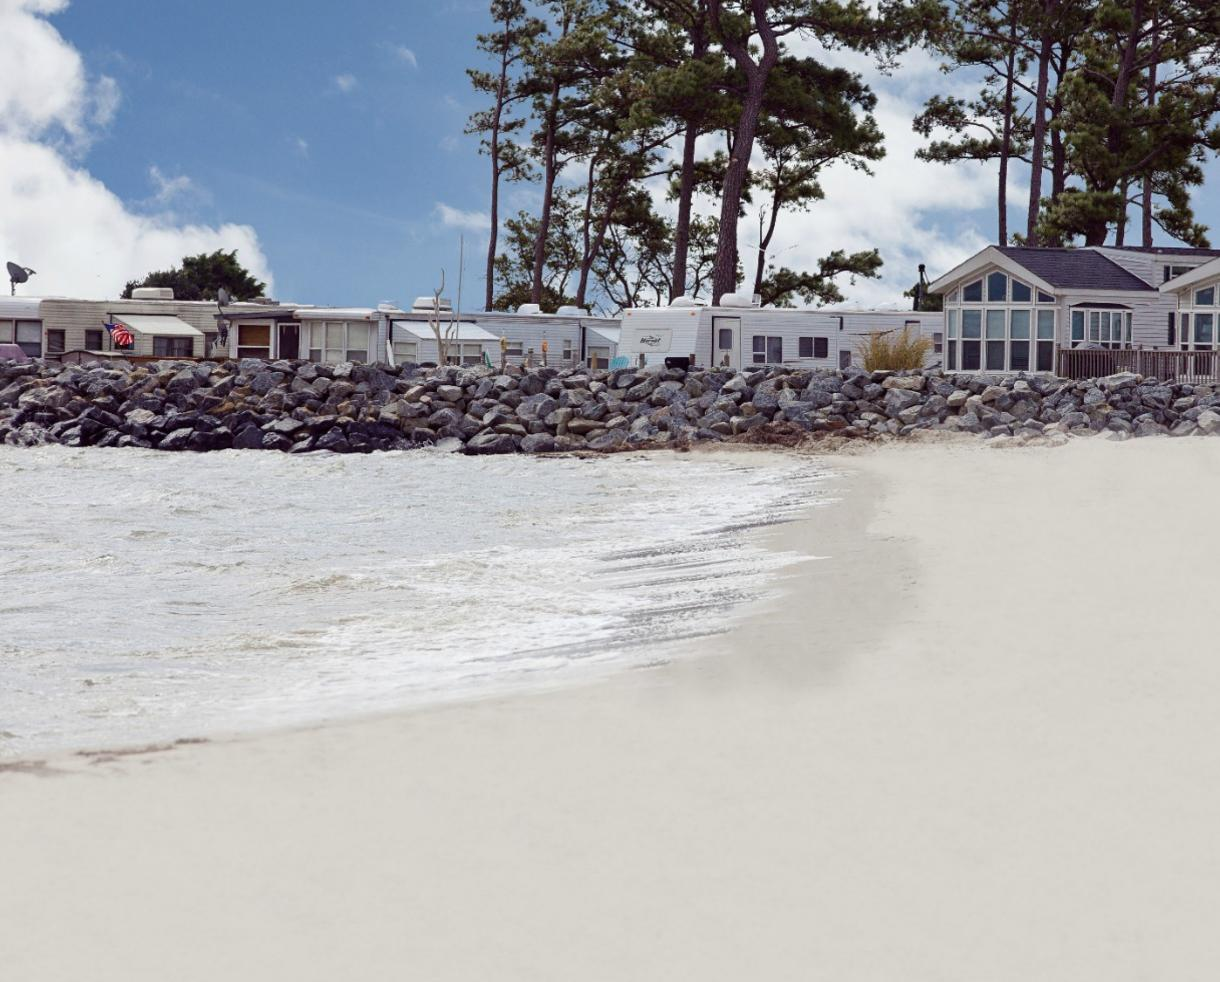 2-Night Water and Electric RV Site at Gwynn's Island RV Resort